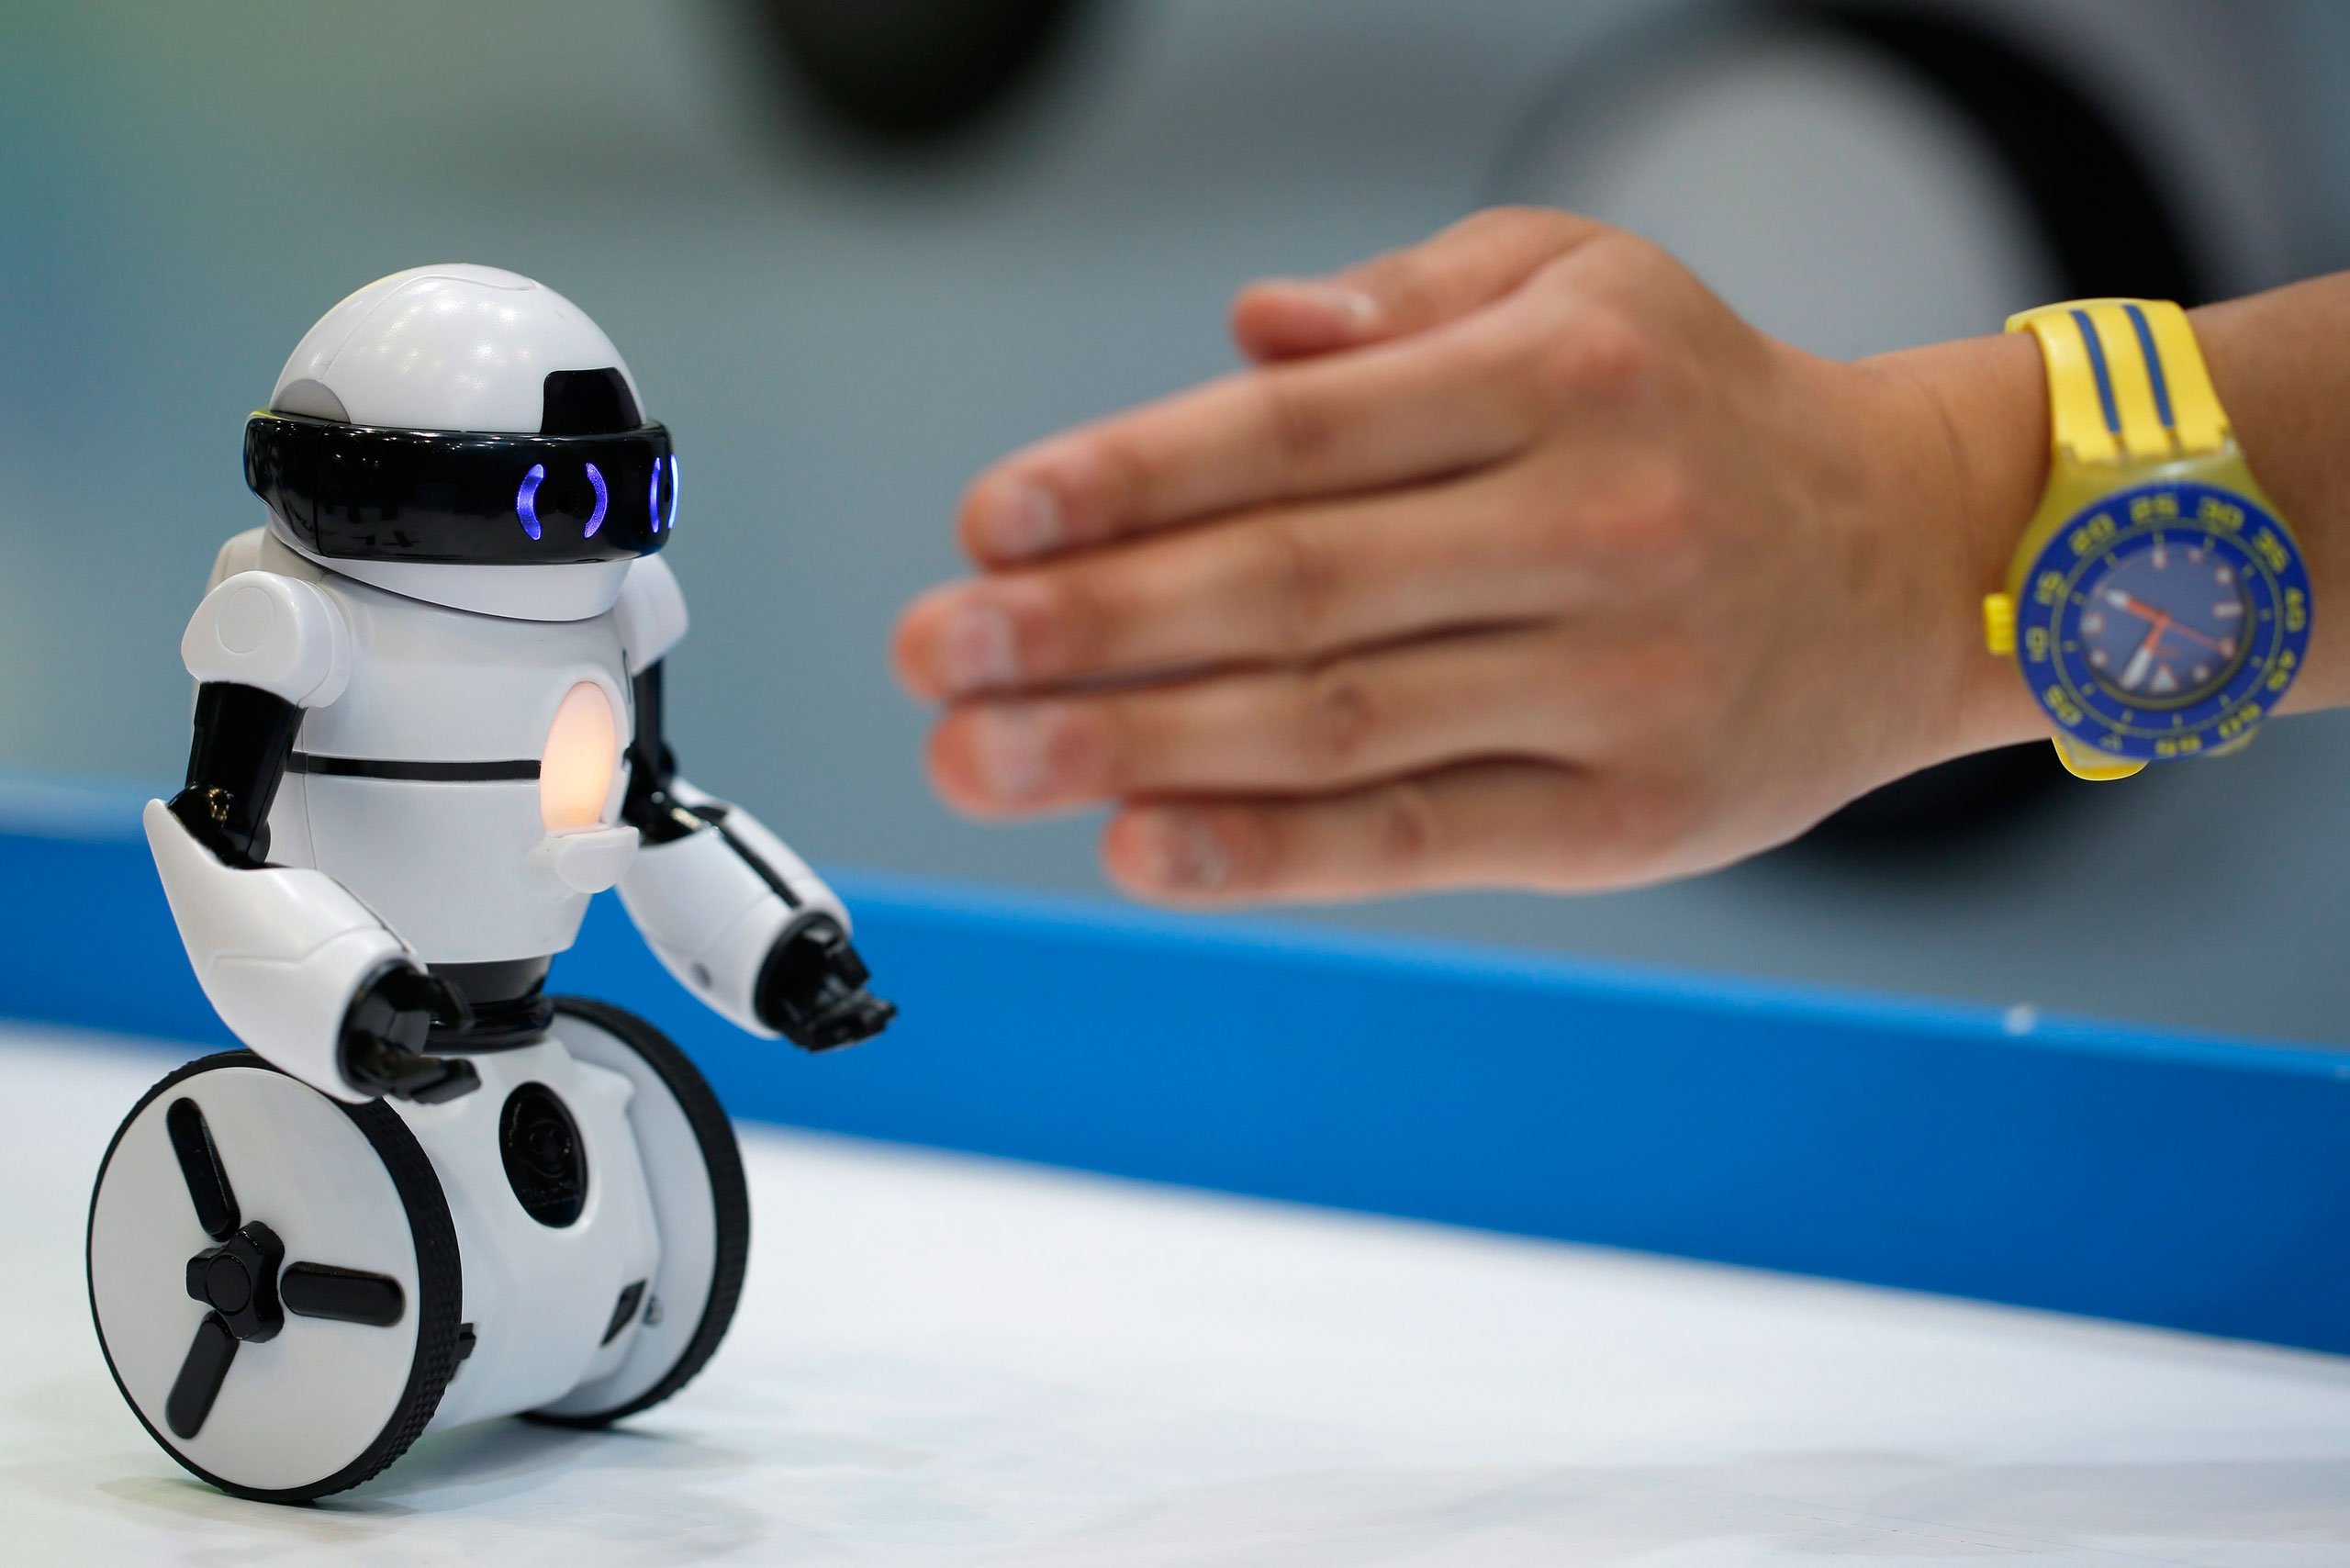 The 'Hello! MiP' entertainment robot responds to hand gestures during a demonstration at the International Tokyo Toy Show 2014 in Tokyo, Japan, 12 June 2014.